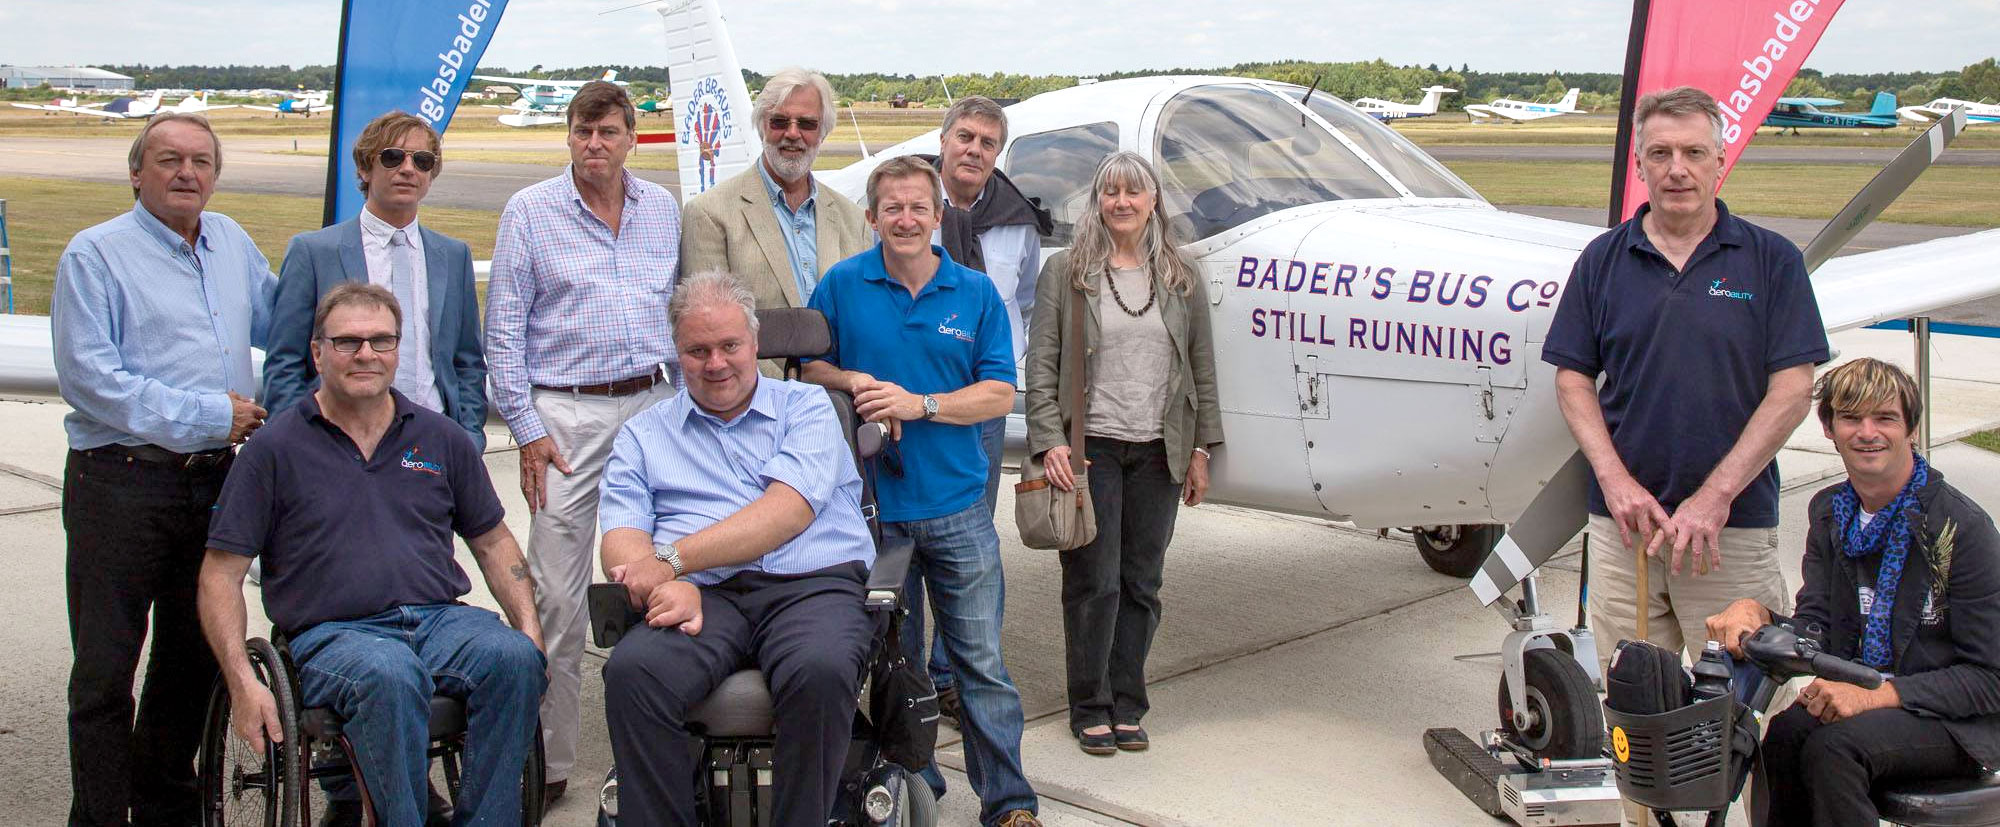 Douglas Bader foundation join in